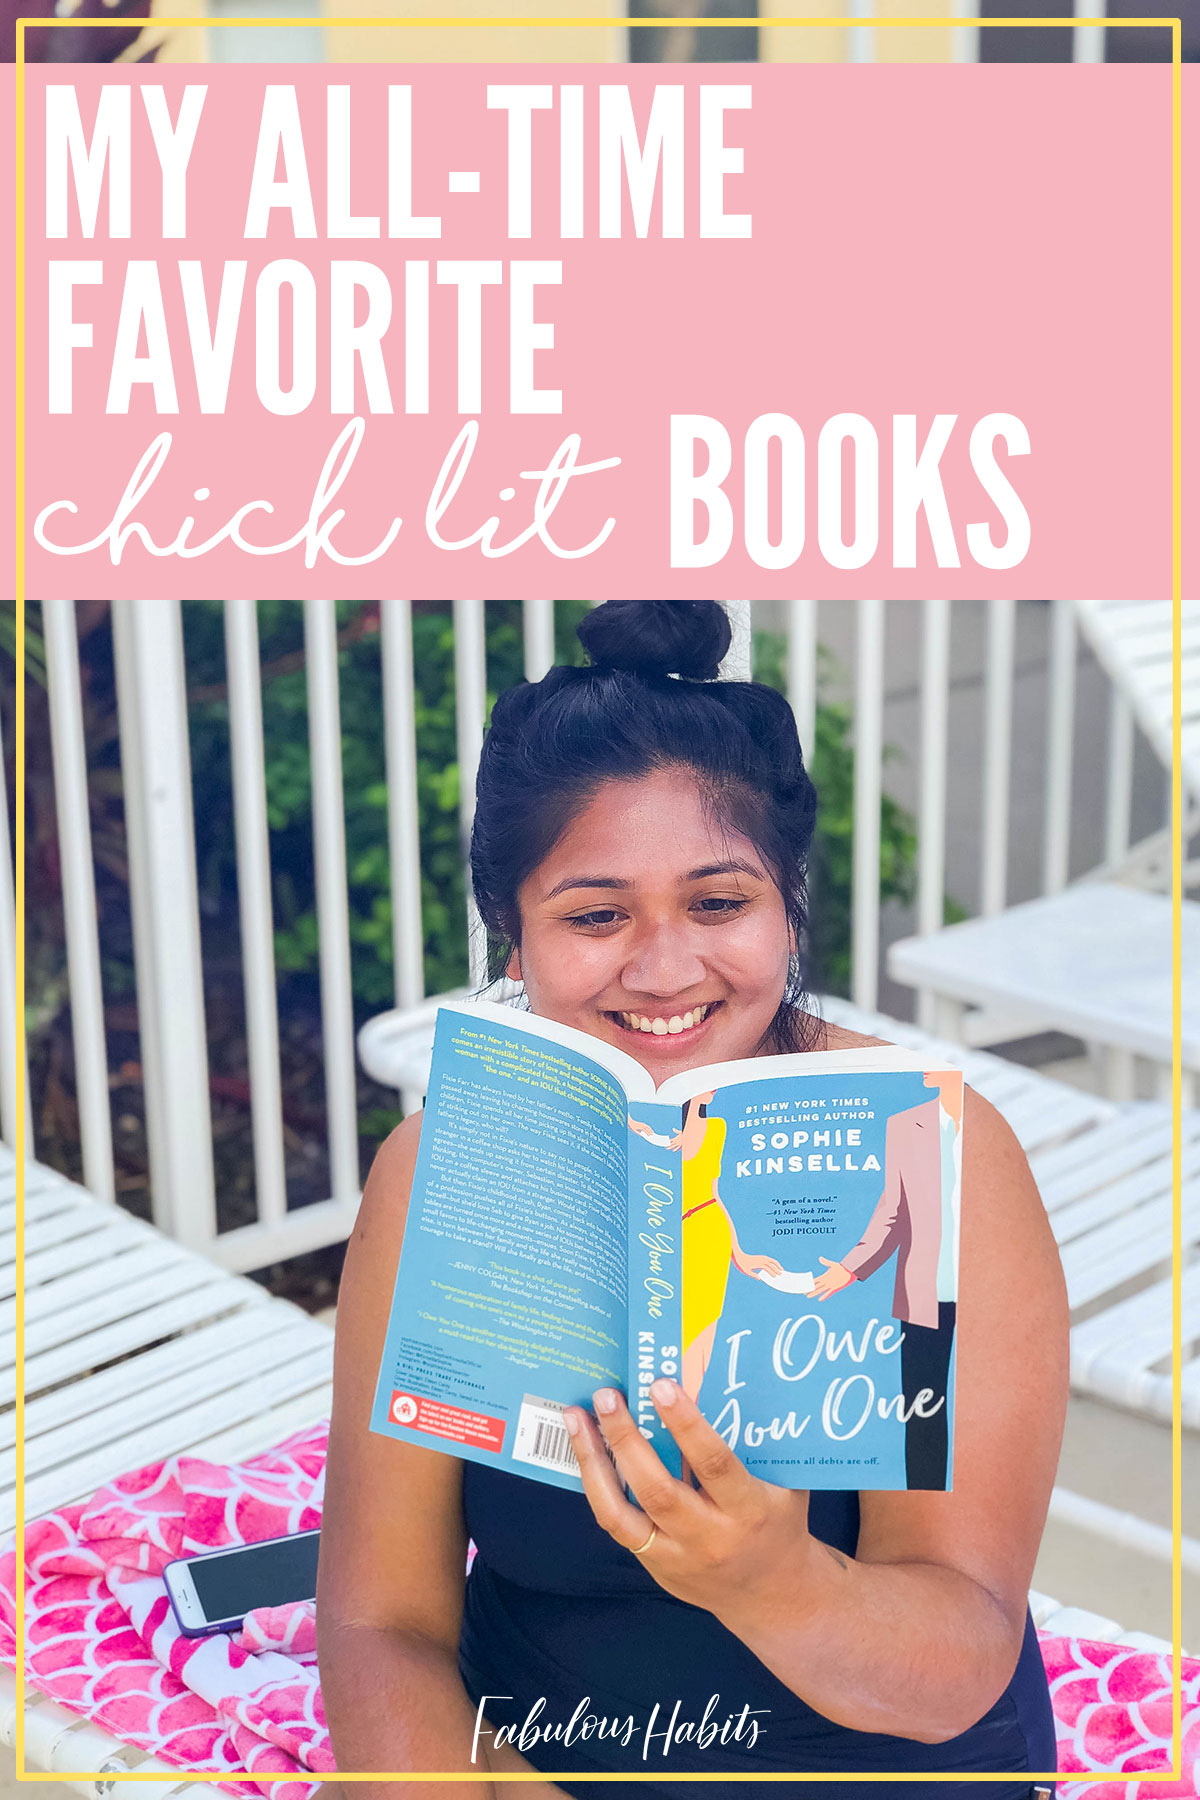 Today, I'm presenting some of my favorite lighthearted yet, inspiring books. Here's my list of the best chick lit books out there. #readinglist #fabuloushabits